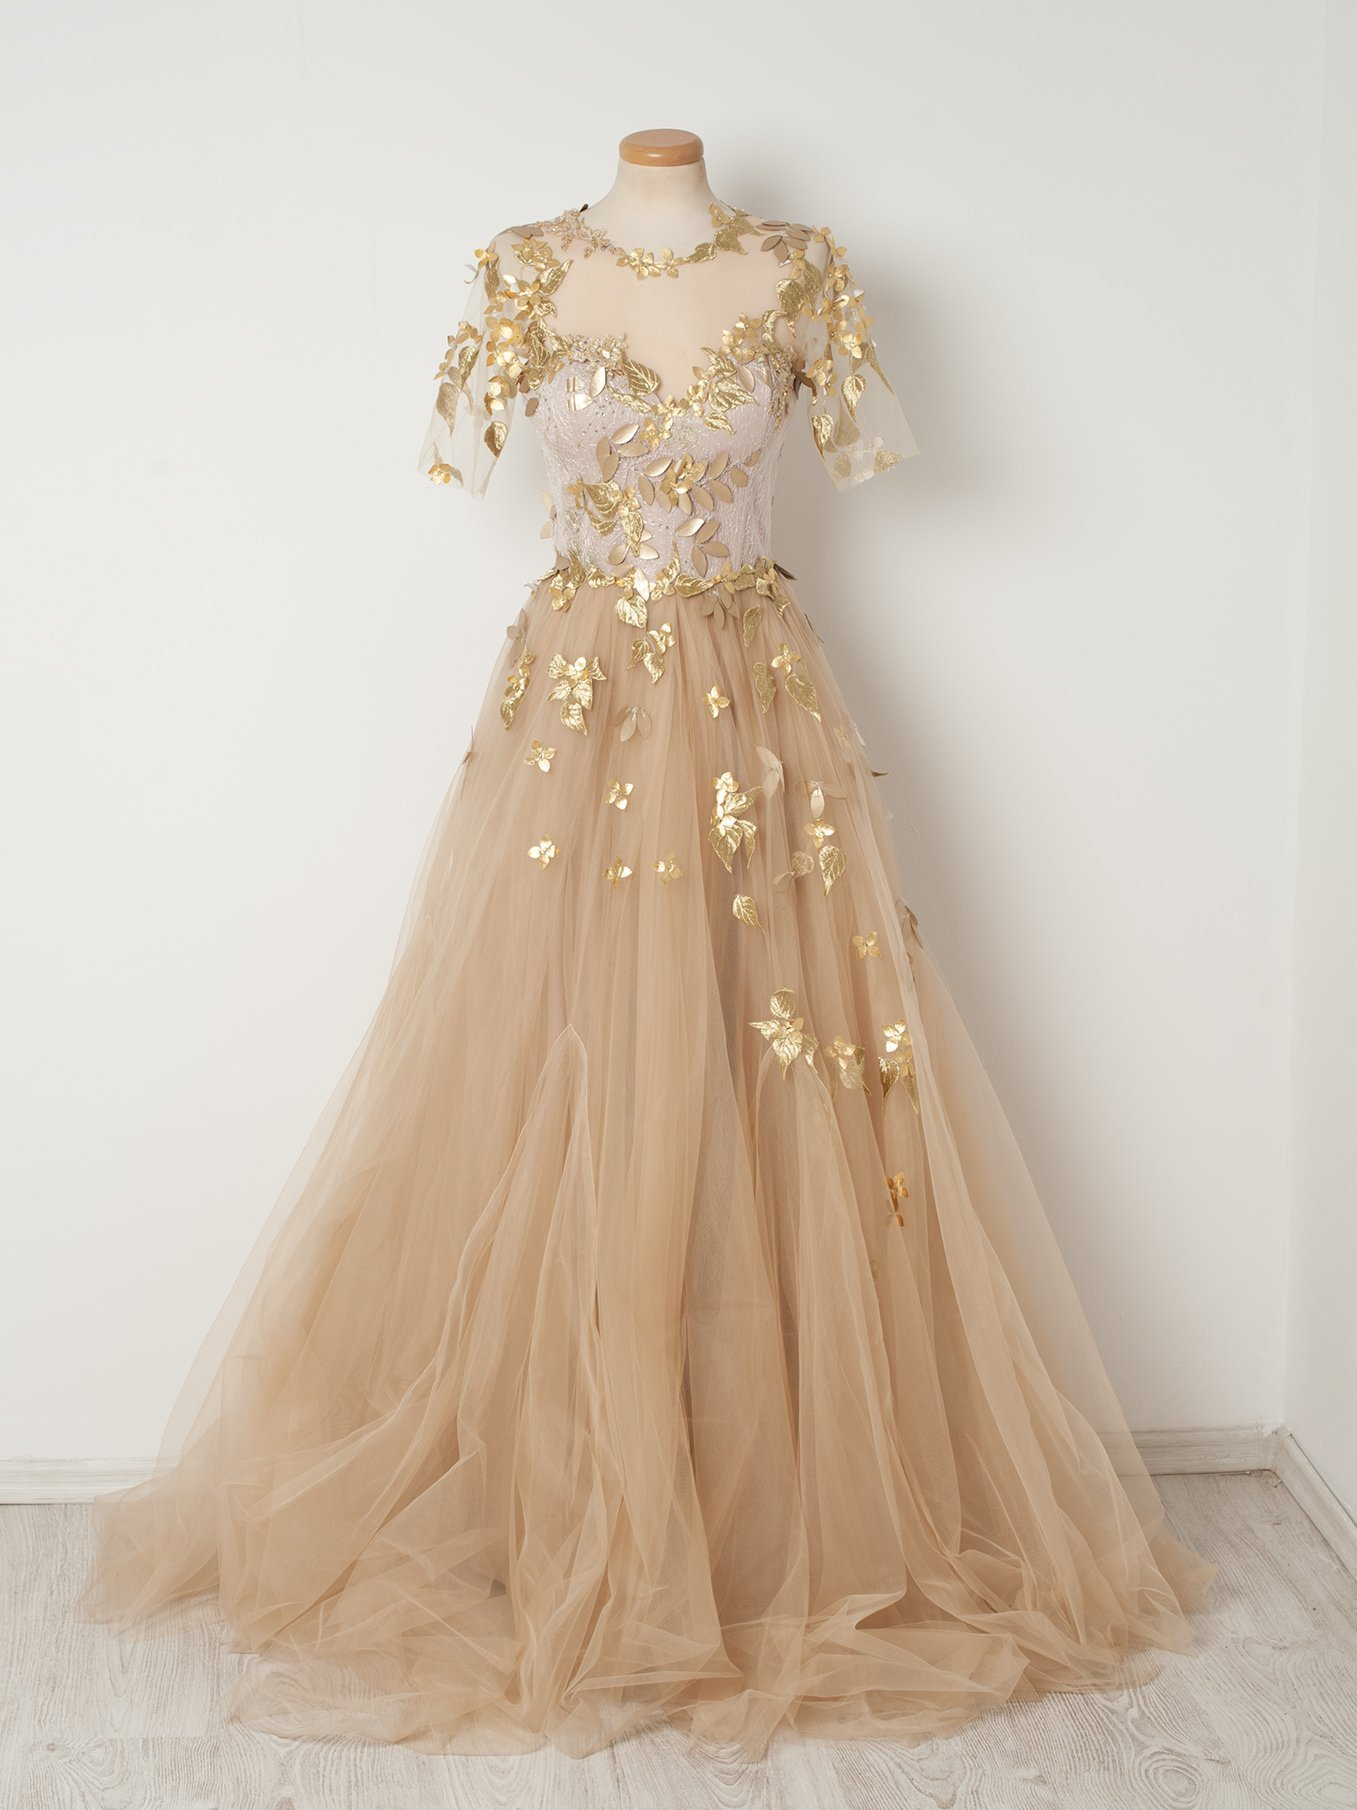 Beautiful Prom Dresses A-line Tulle Long Prom Dresses c2ce3565a